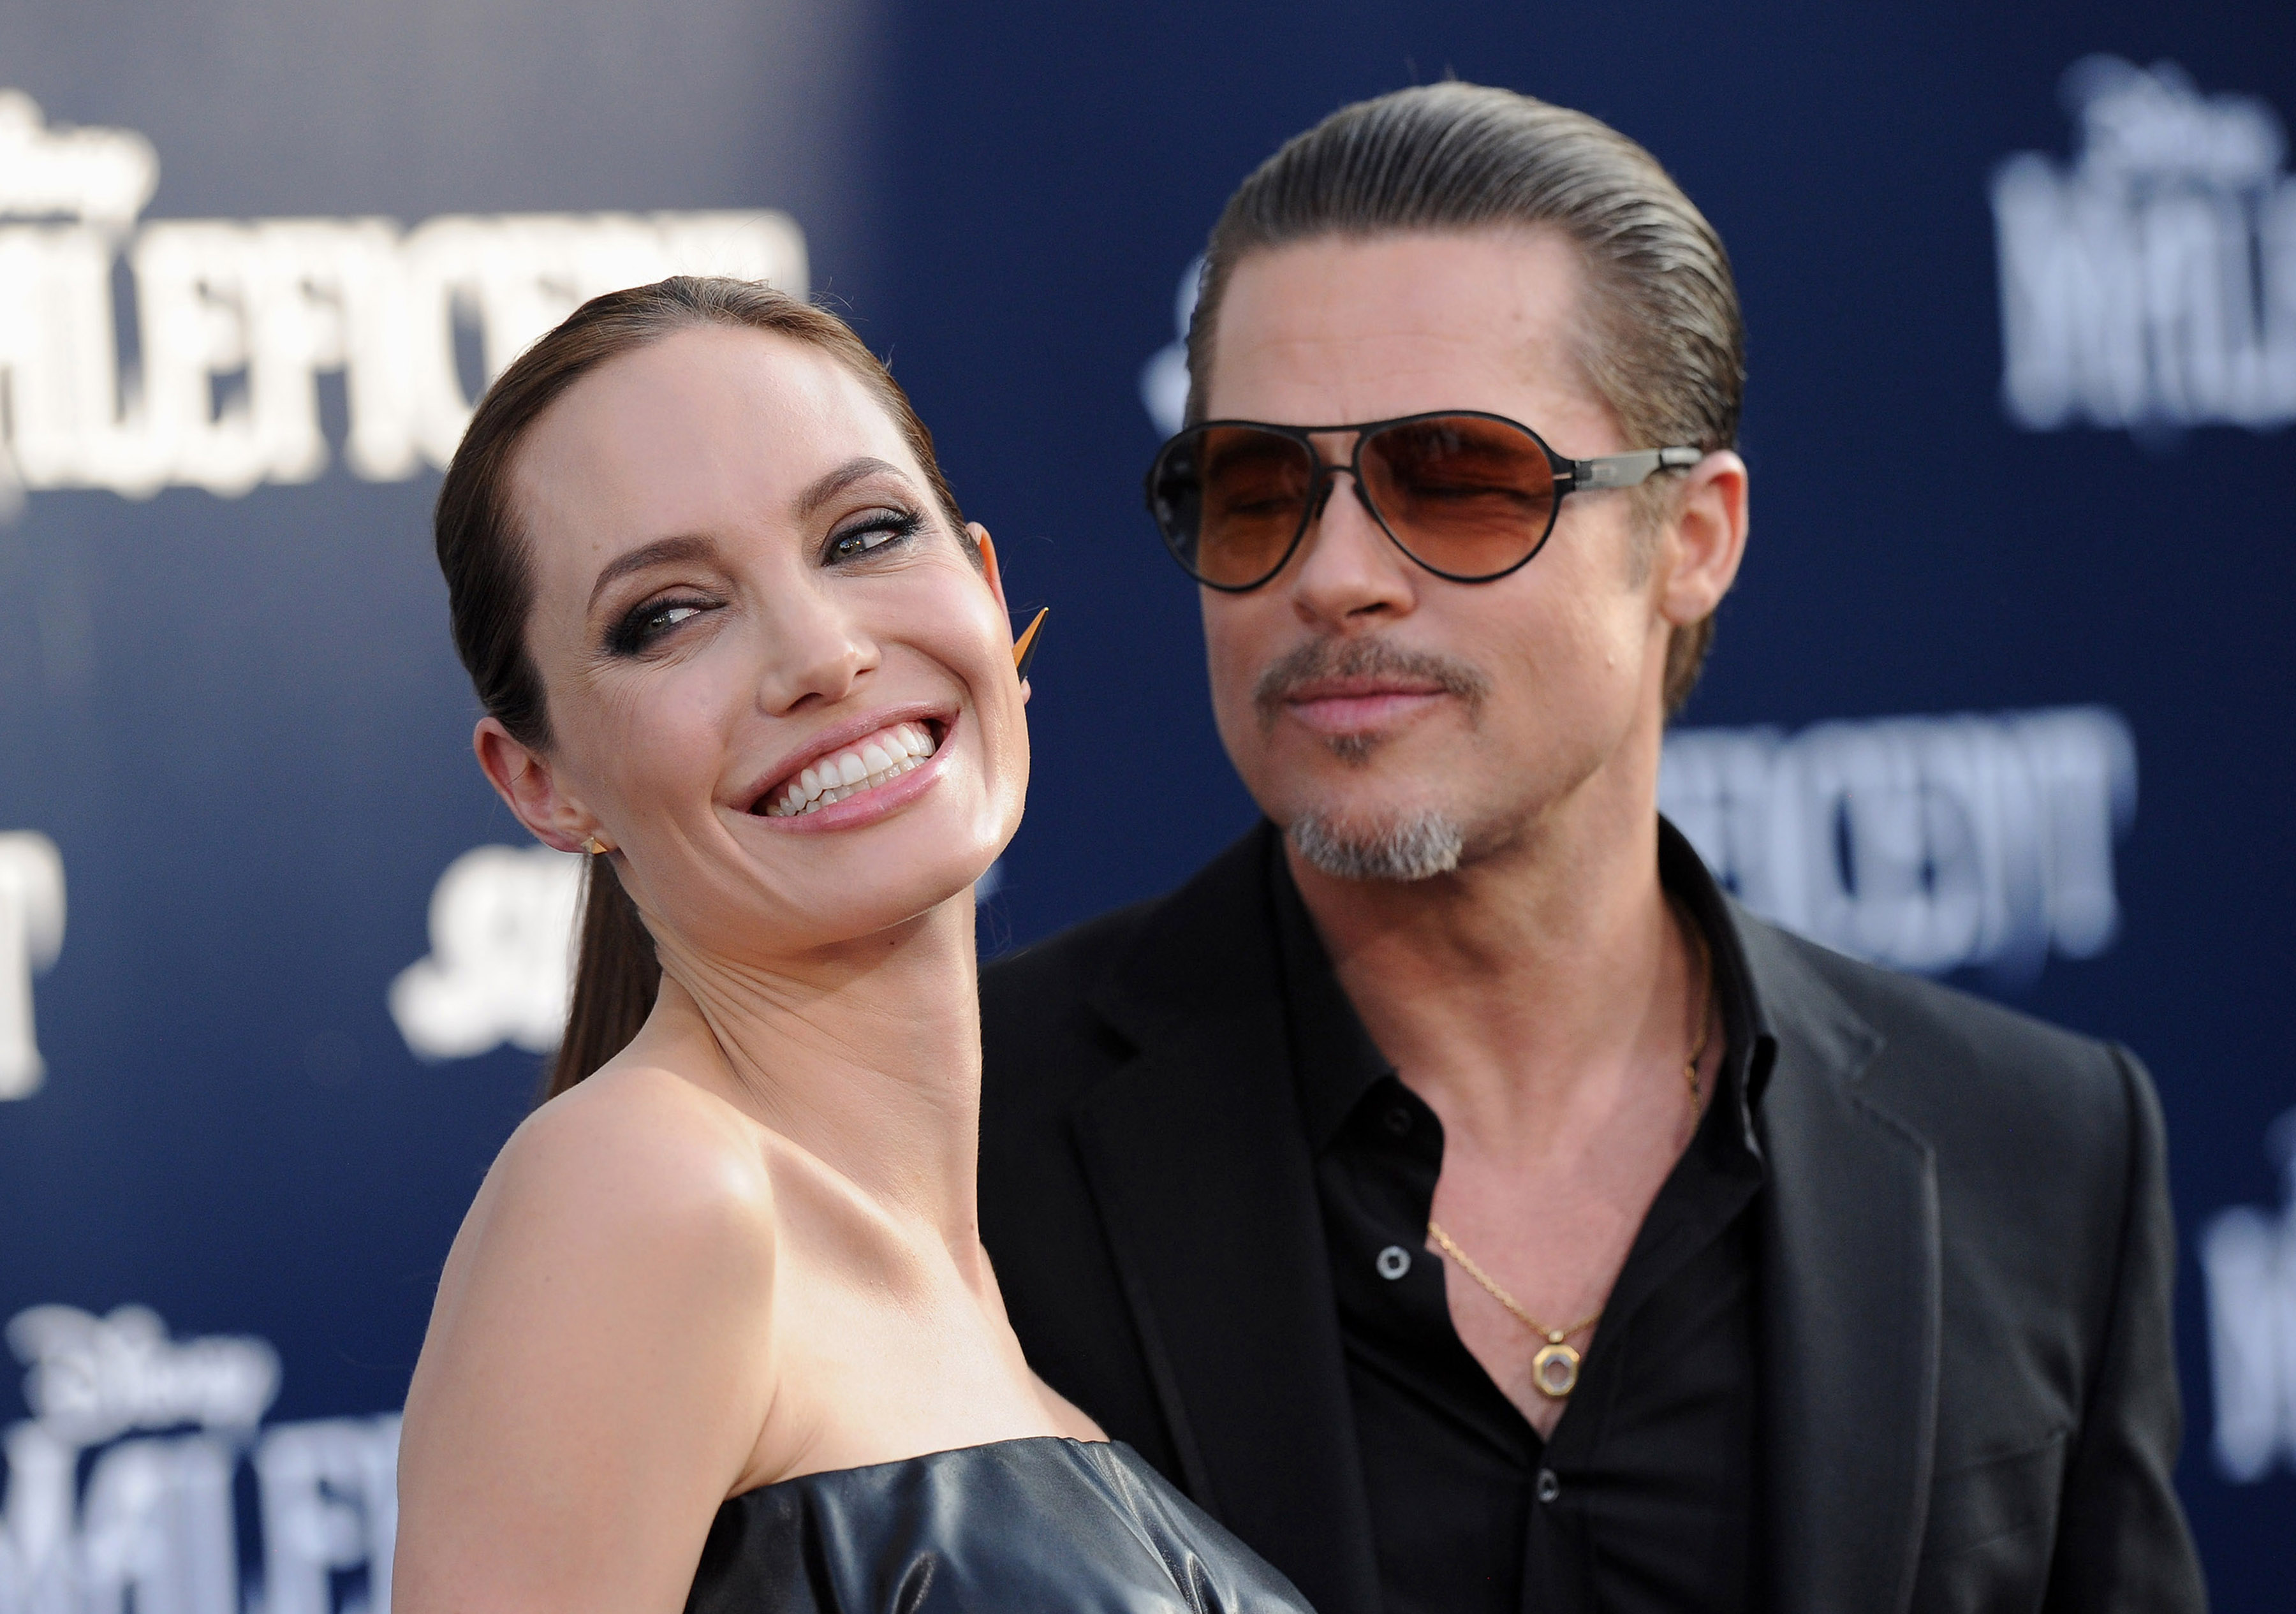 We have an important update about the Brad Pitt and Angelina Jolie divorce case